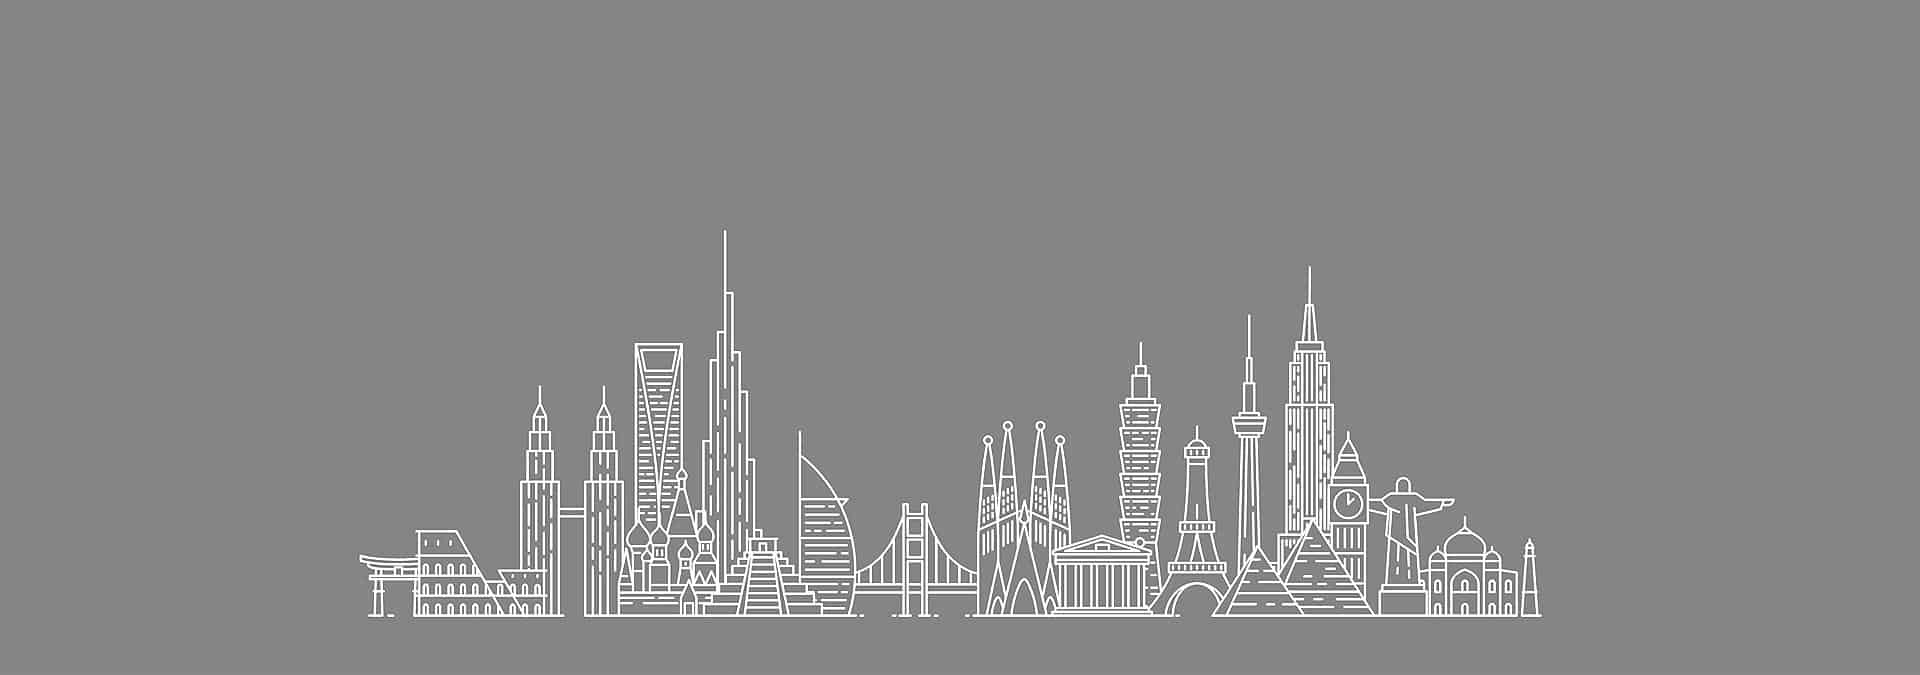 Cityscape with landmarks from different global cities.